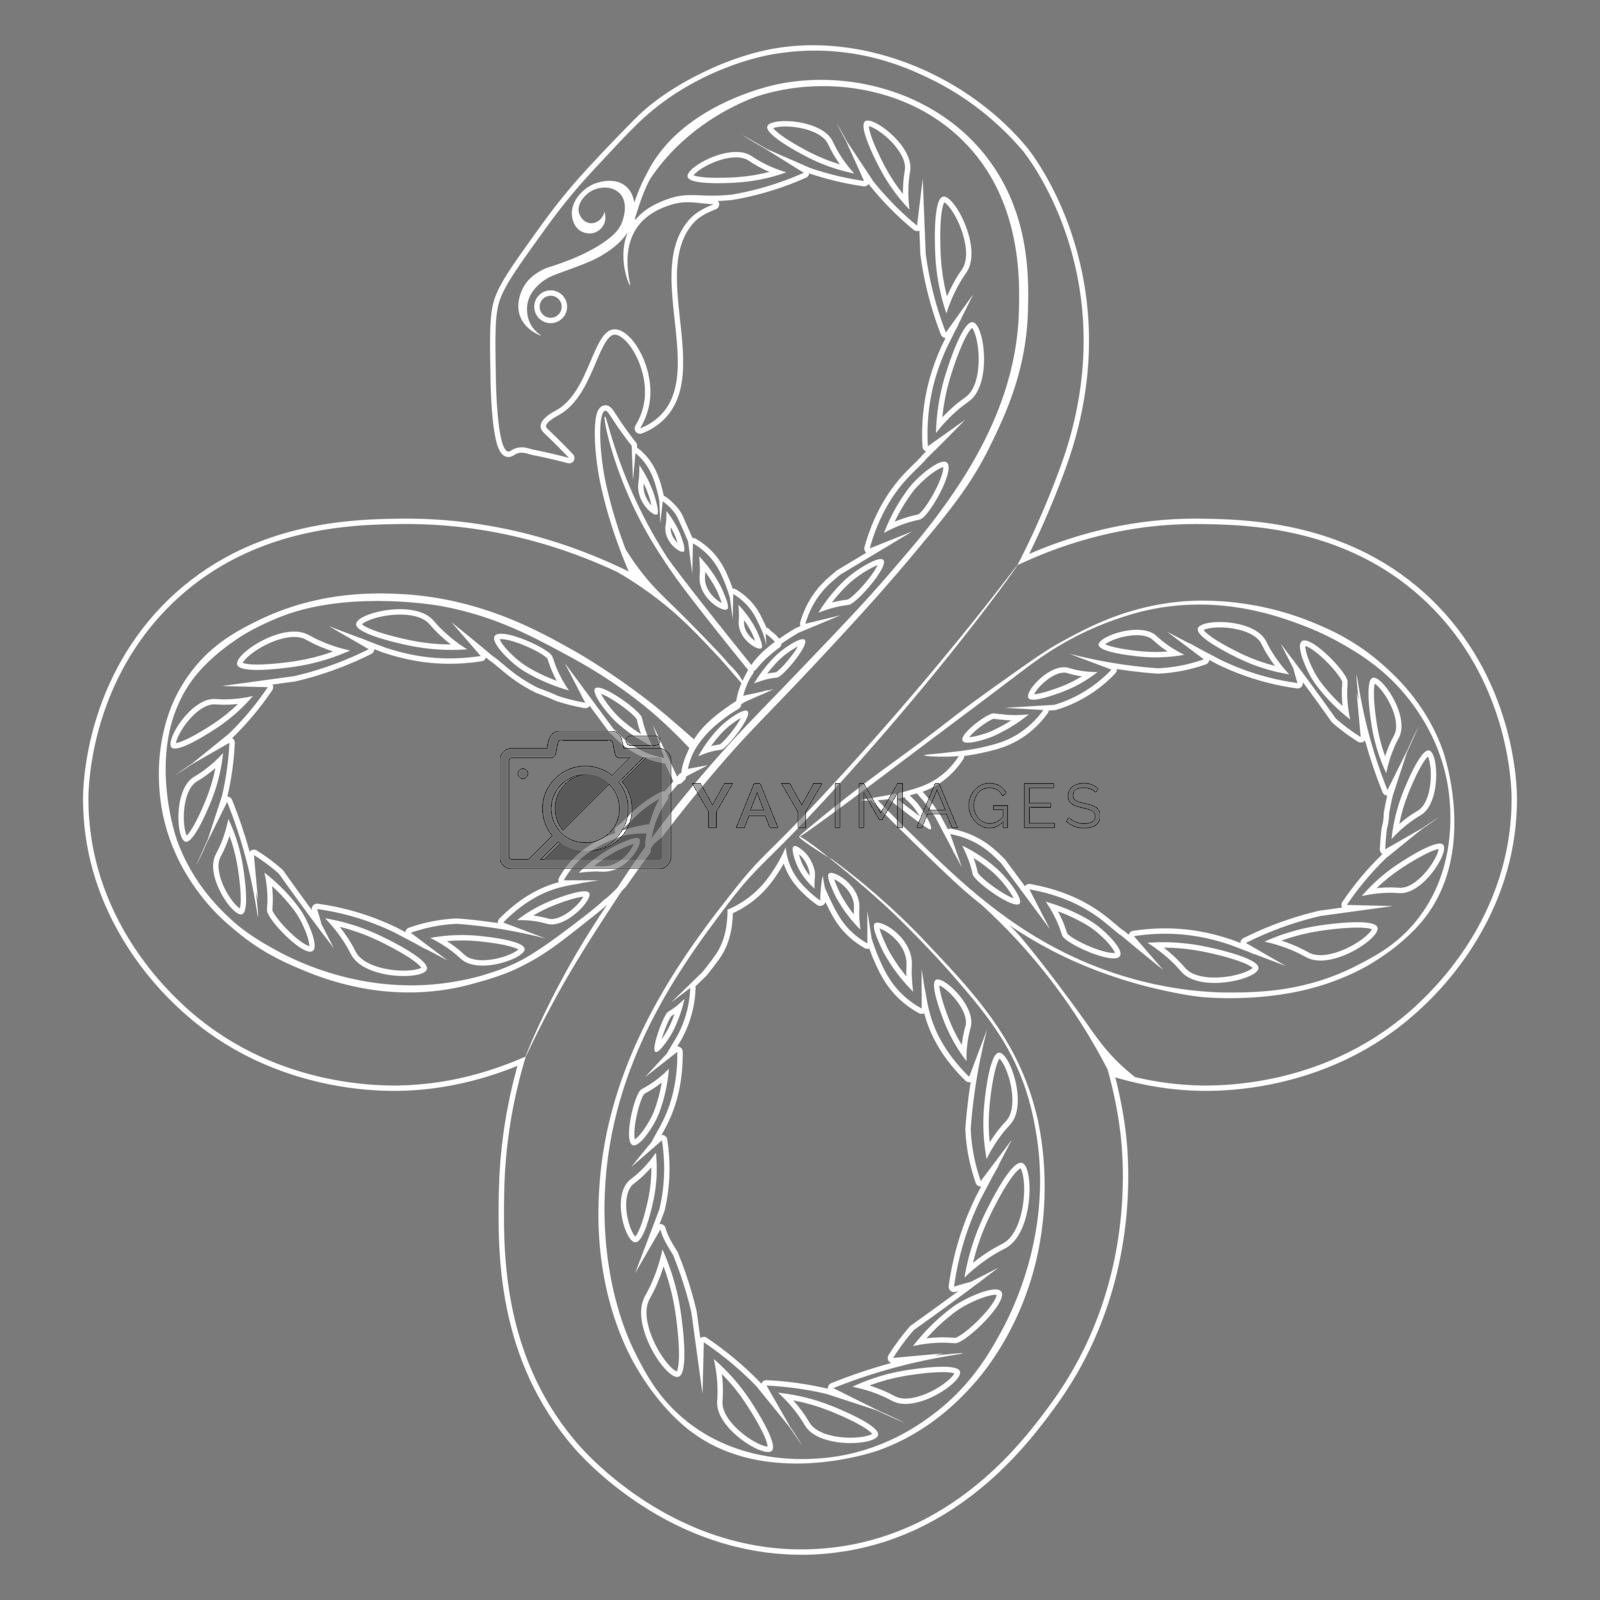 White contour illustration of occult symbol ouroboros serpent on grey background